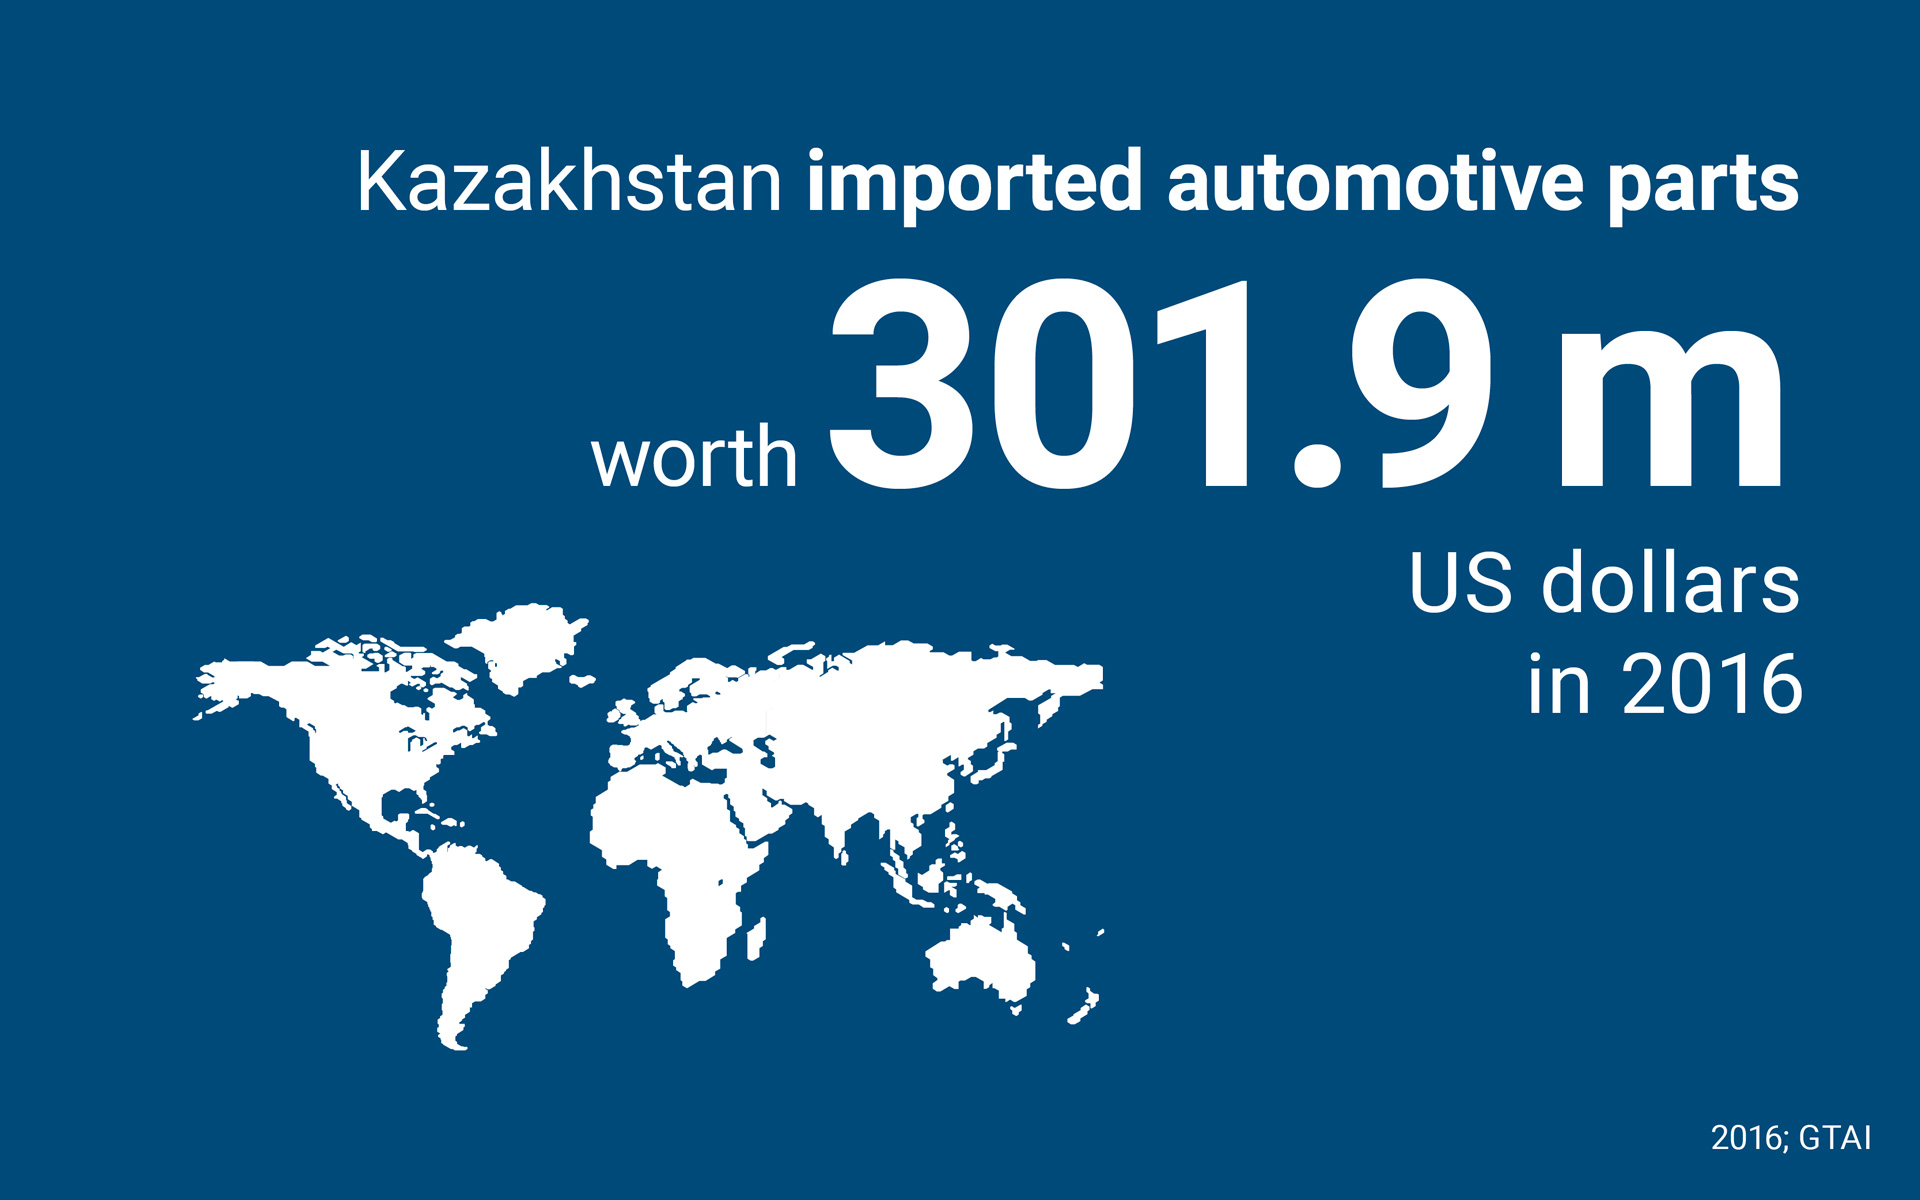 Kazakhstan imported automotive parts worth 301.9 m US dollars in 2016